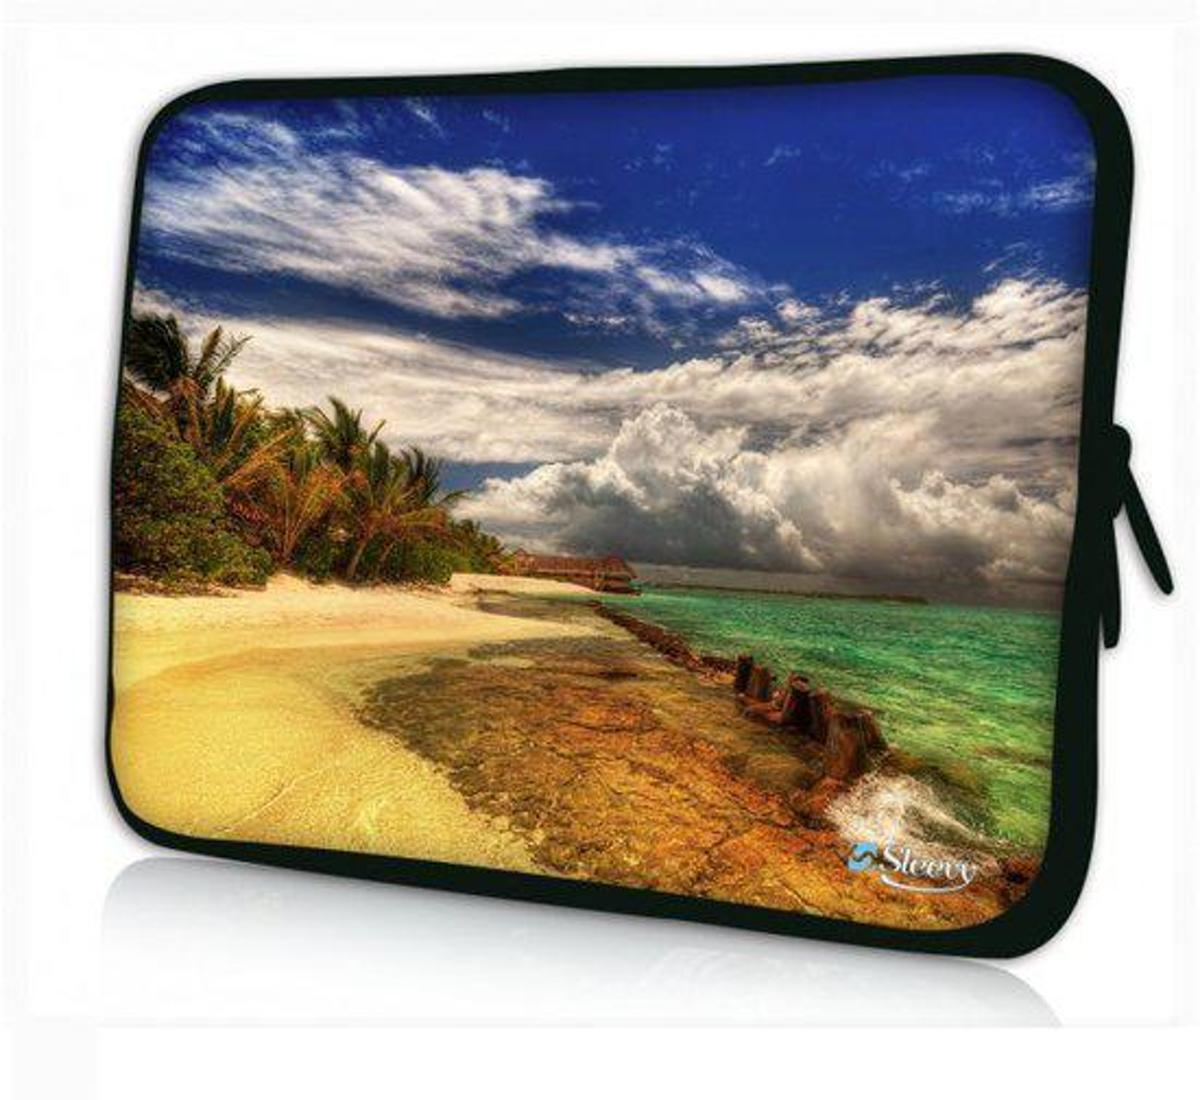 Sleevy 15,6 inch laptophoes strand design - Laptop sleeve - Macbook hoes - beschermhoes